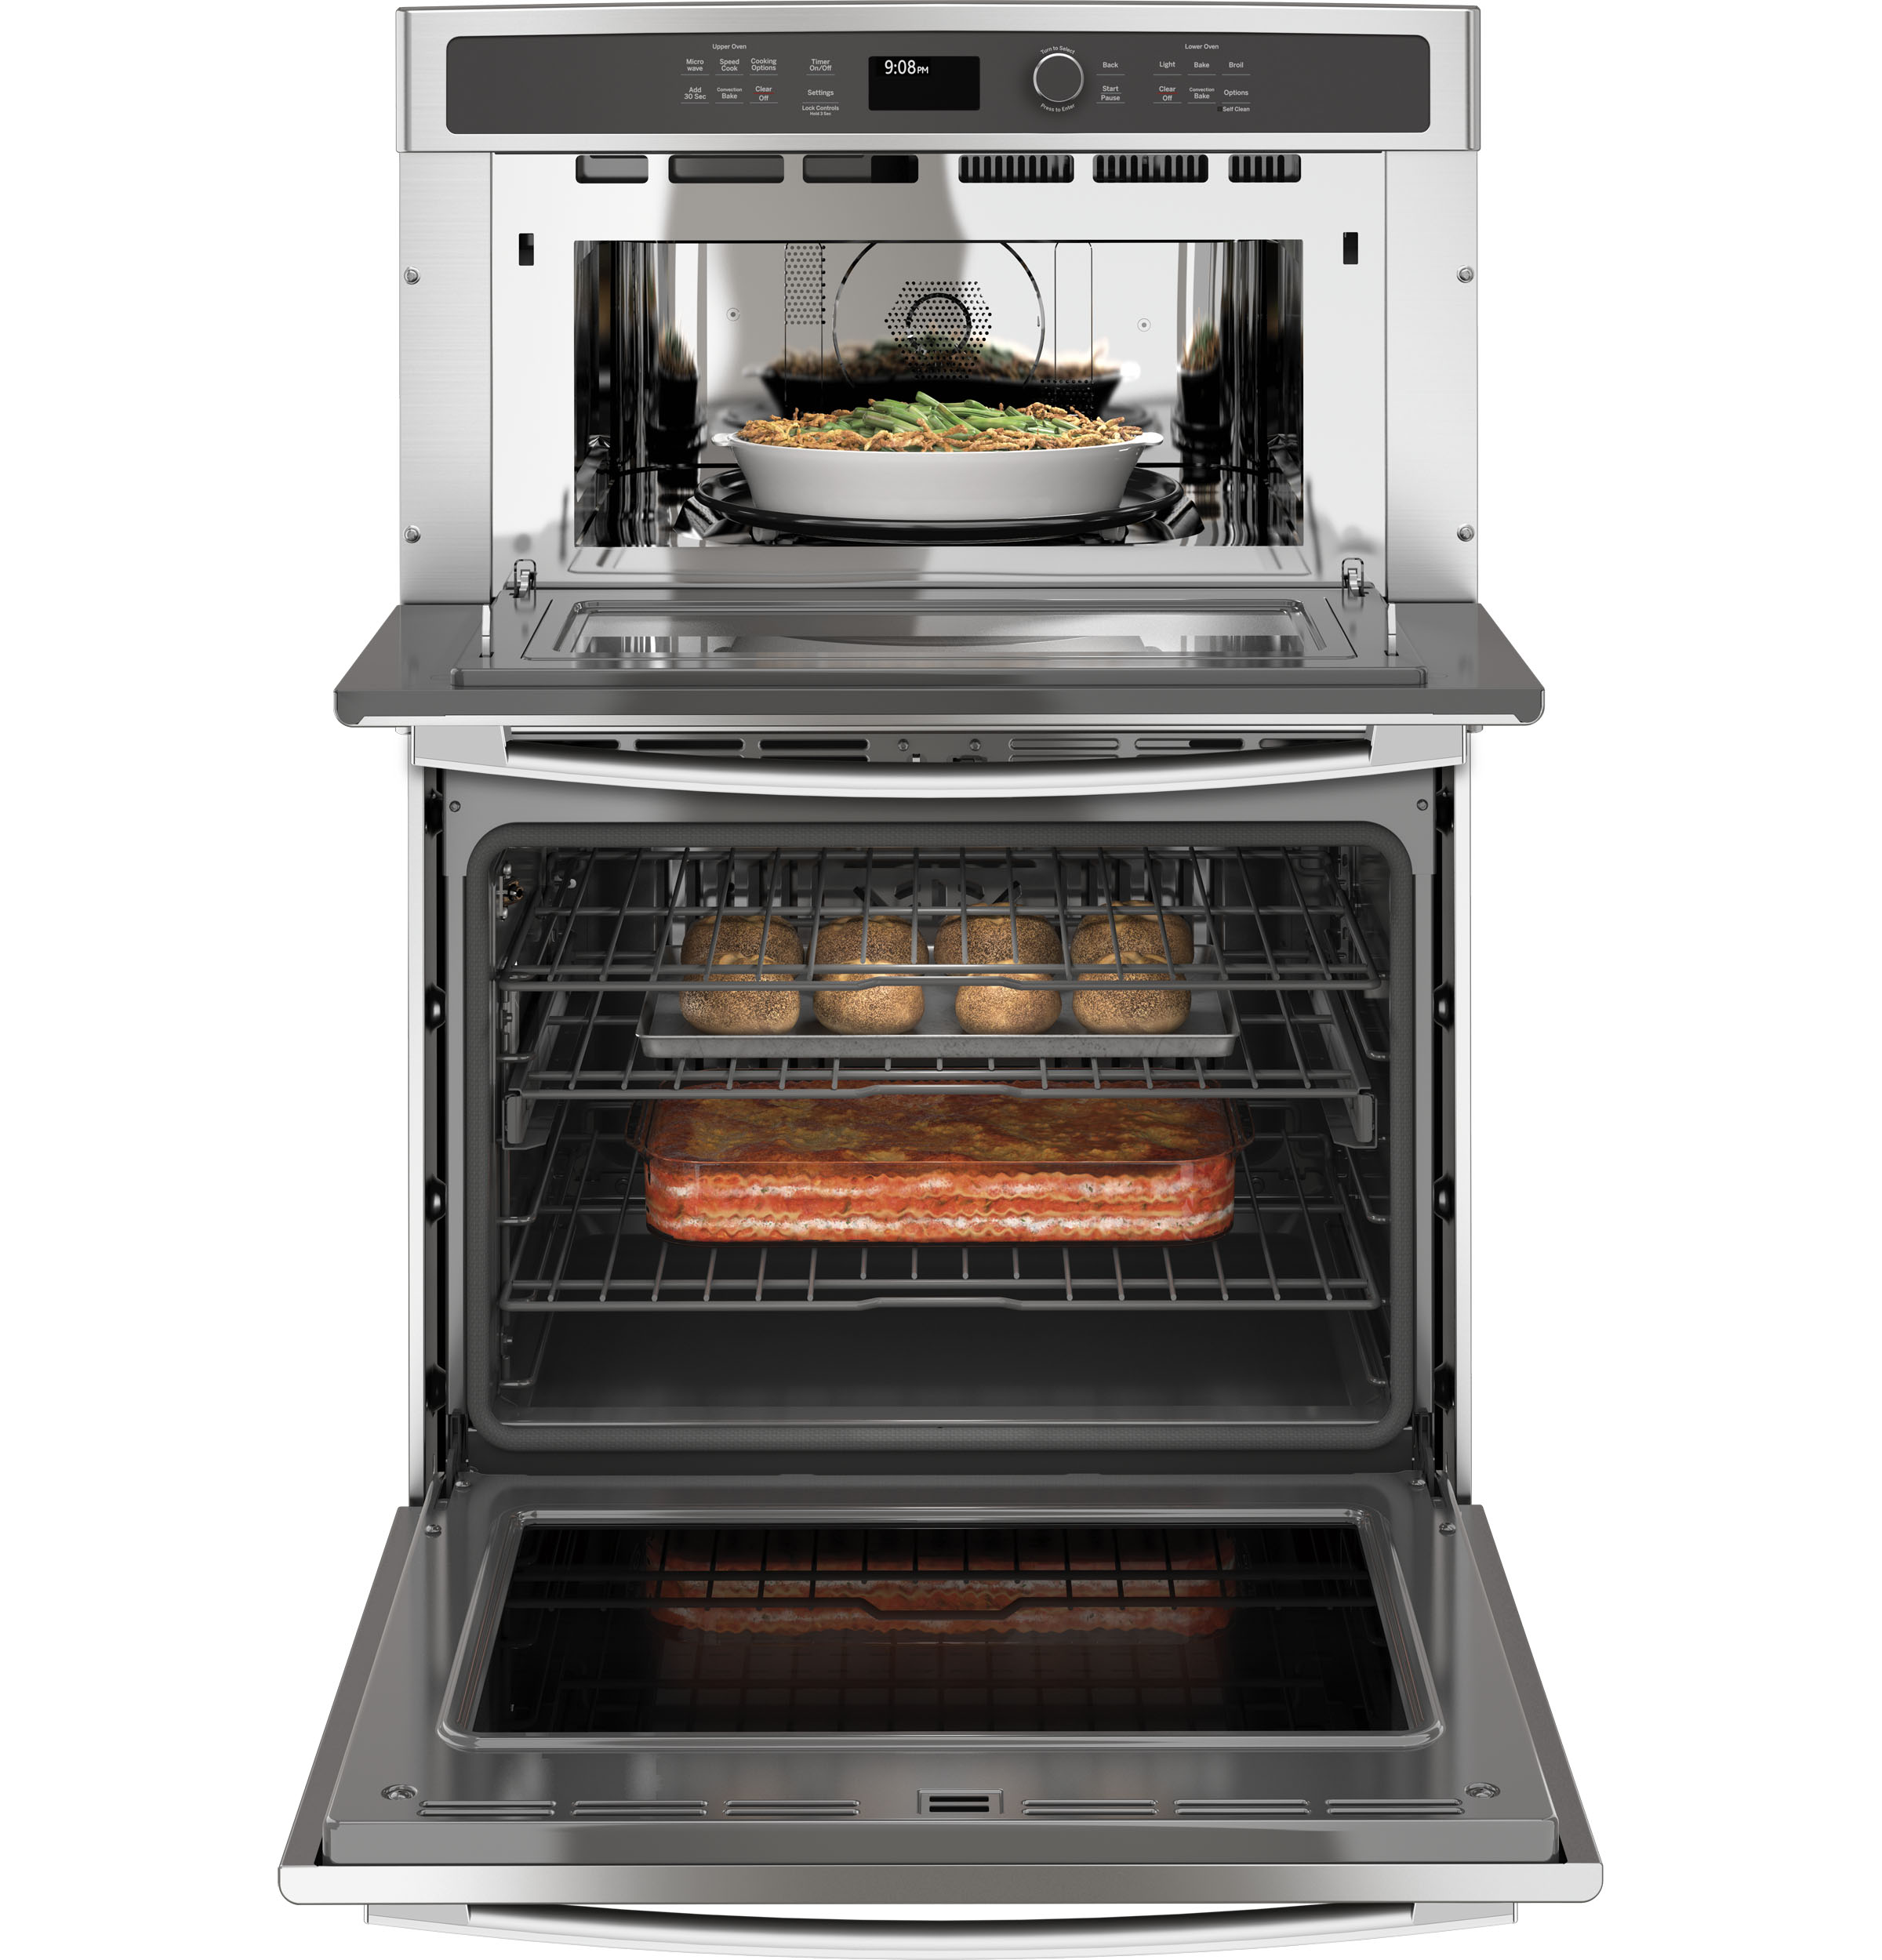 Model: PT9800SHSS | GE Profile GE Profile™ 30 in. Combination Double Wall Oven with Convection and Advantium® Technology